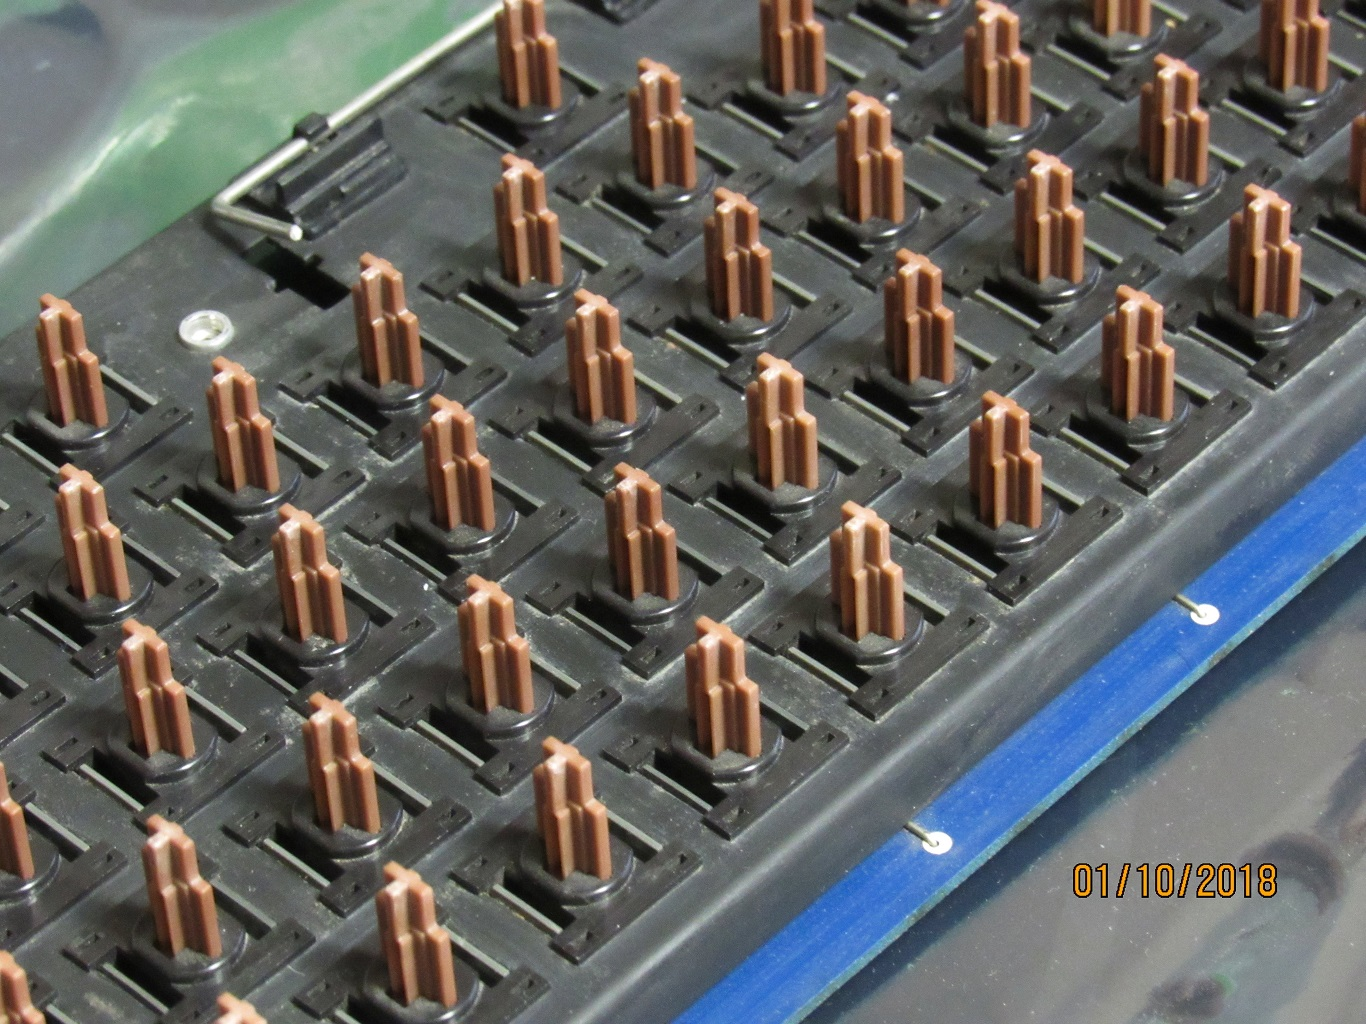 Apple IIe Pre-production - key switches 1.jpg